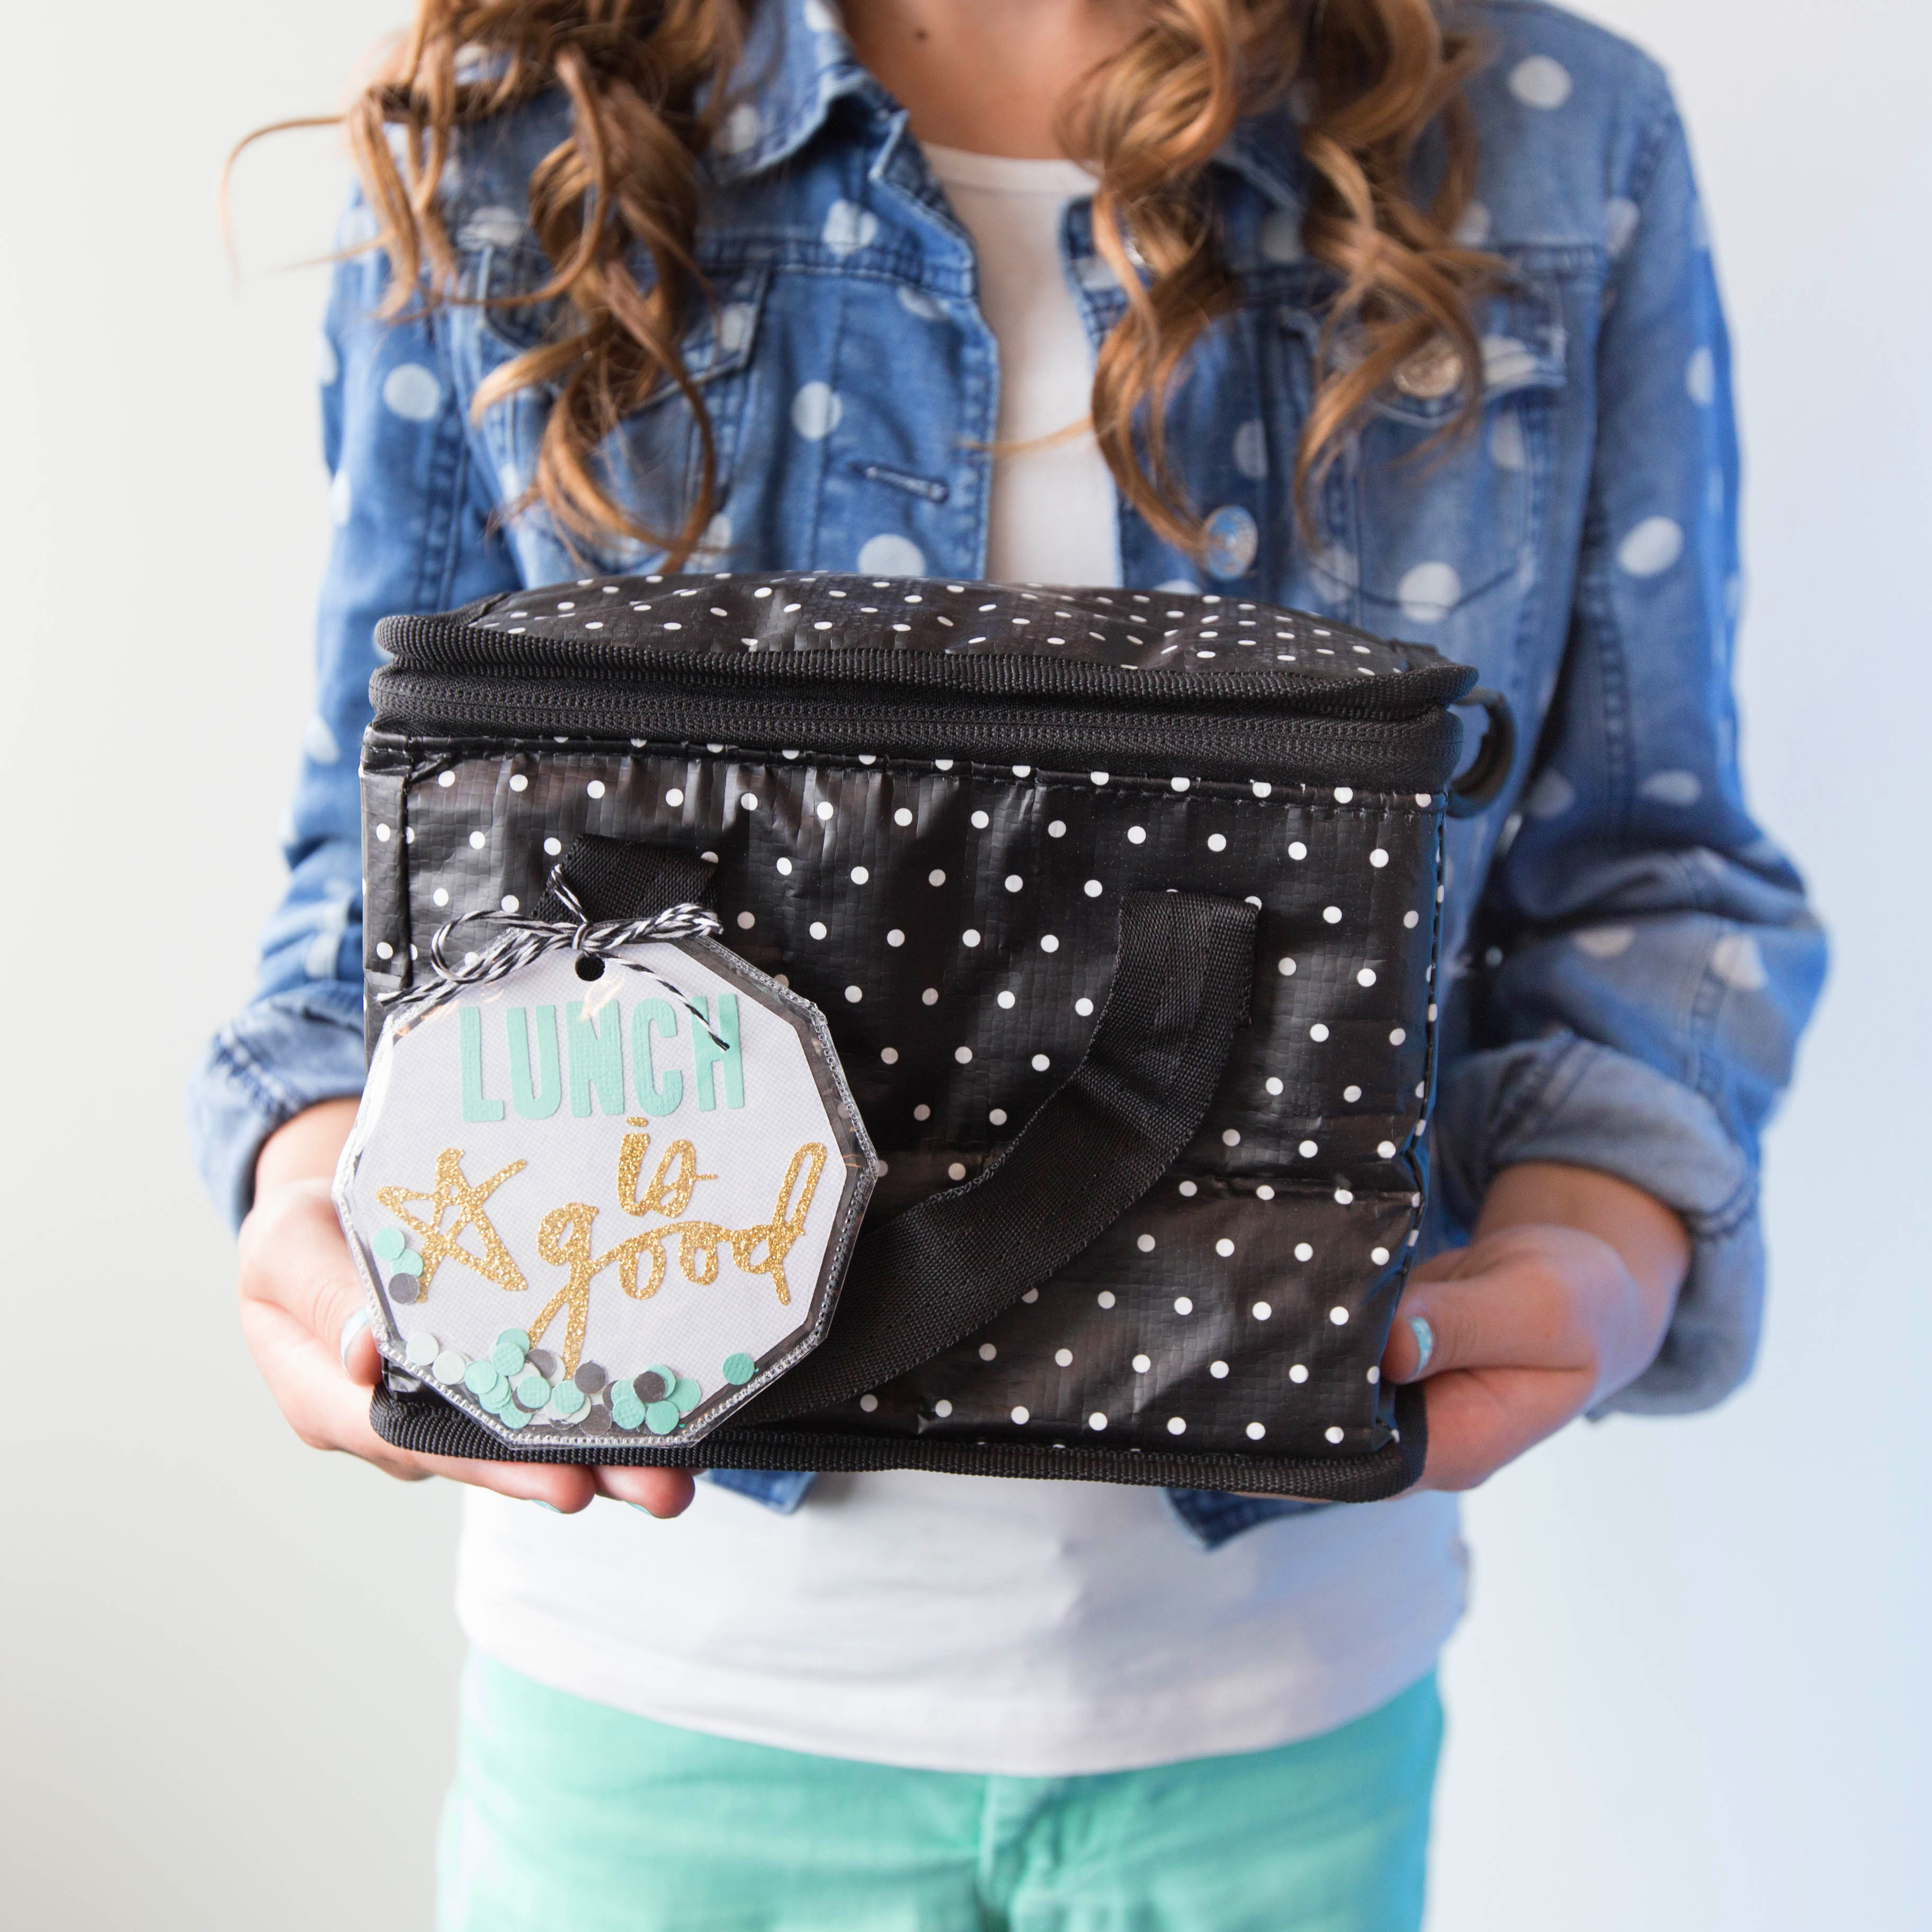 MultiBrand_-BackToSchool_StyledShoot-13